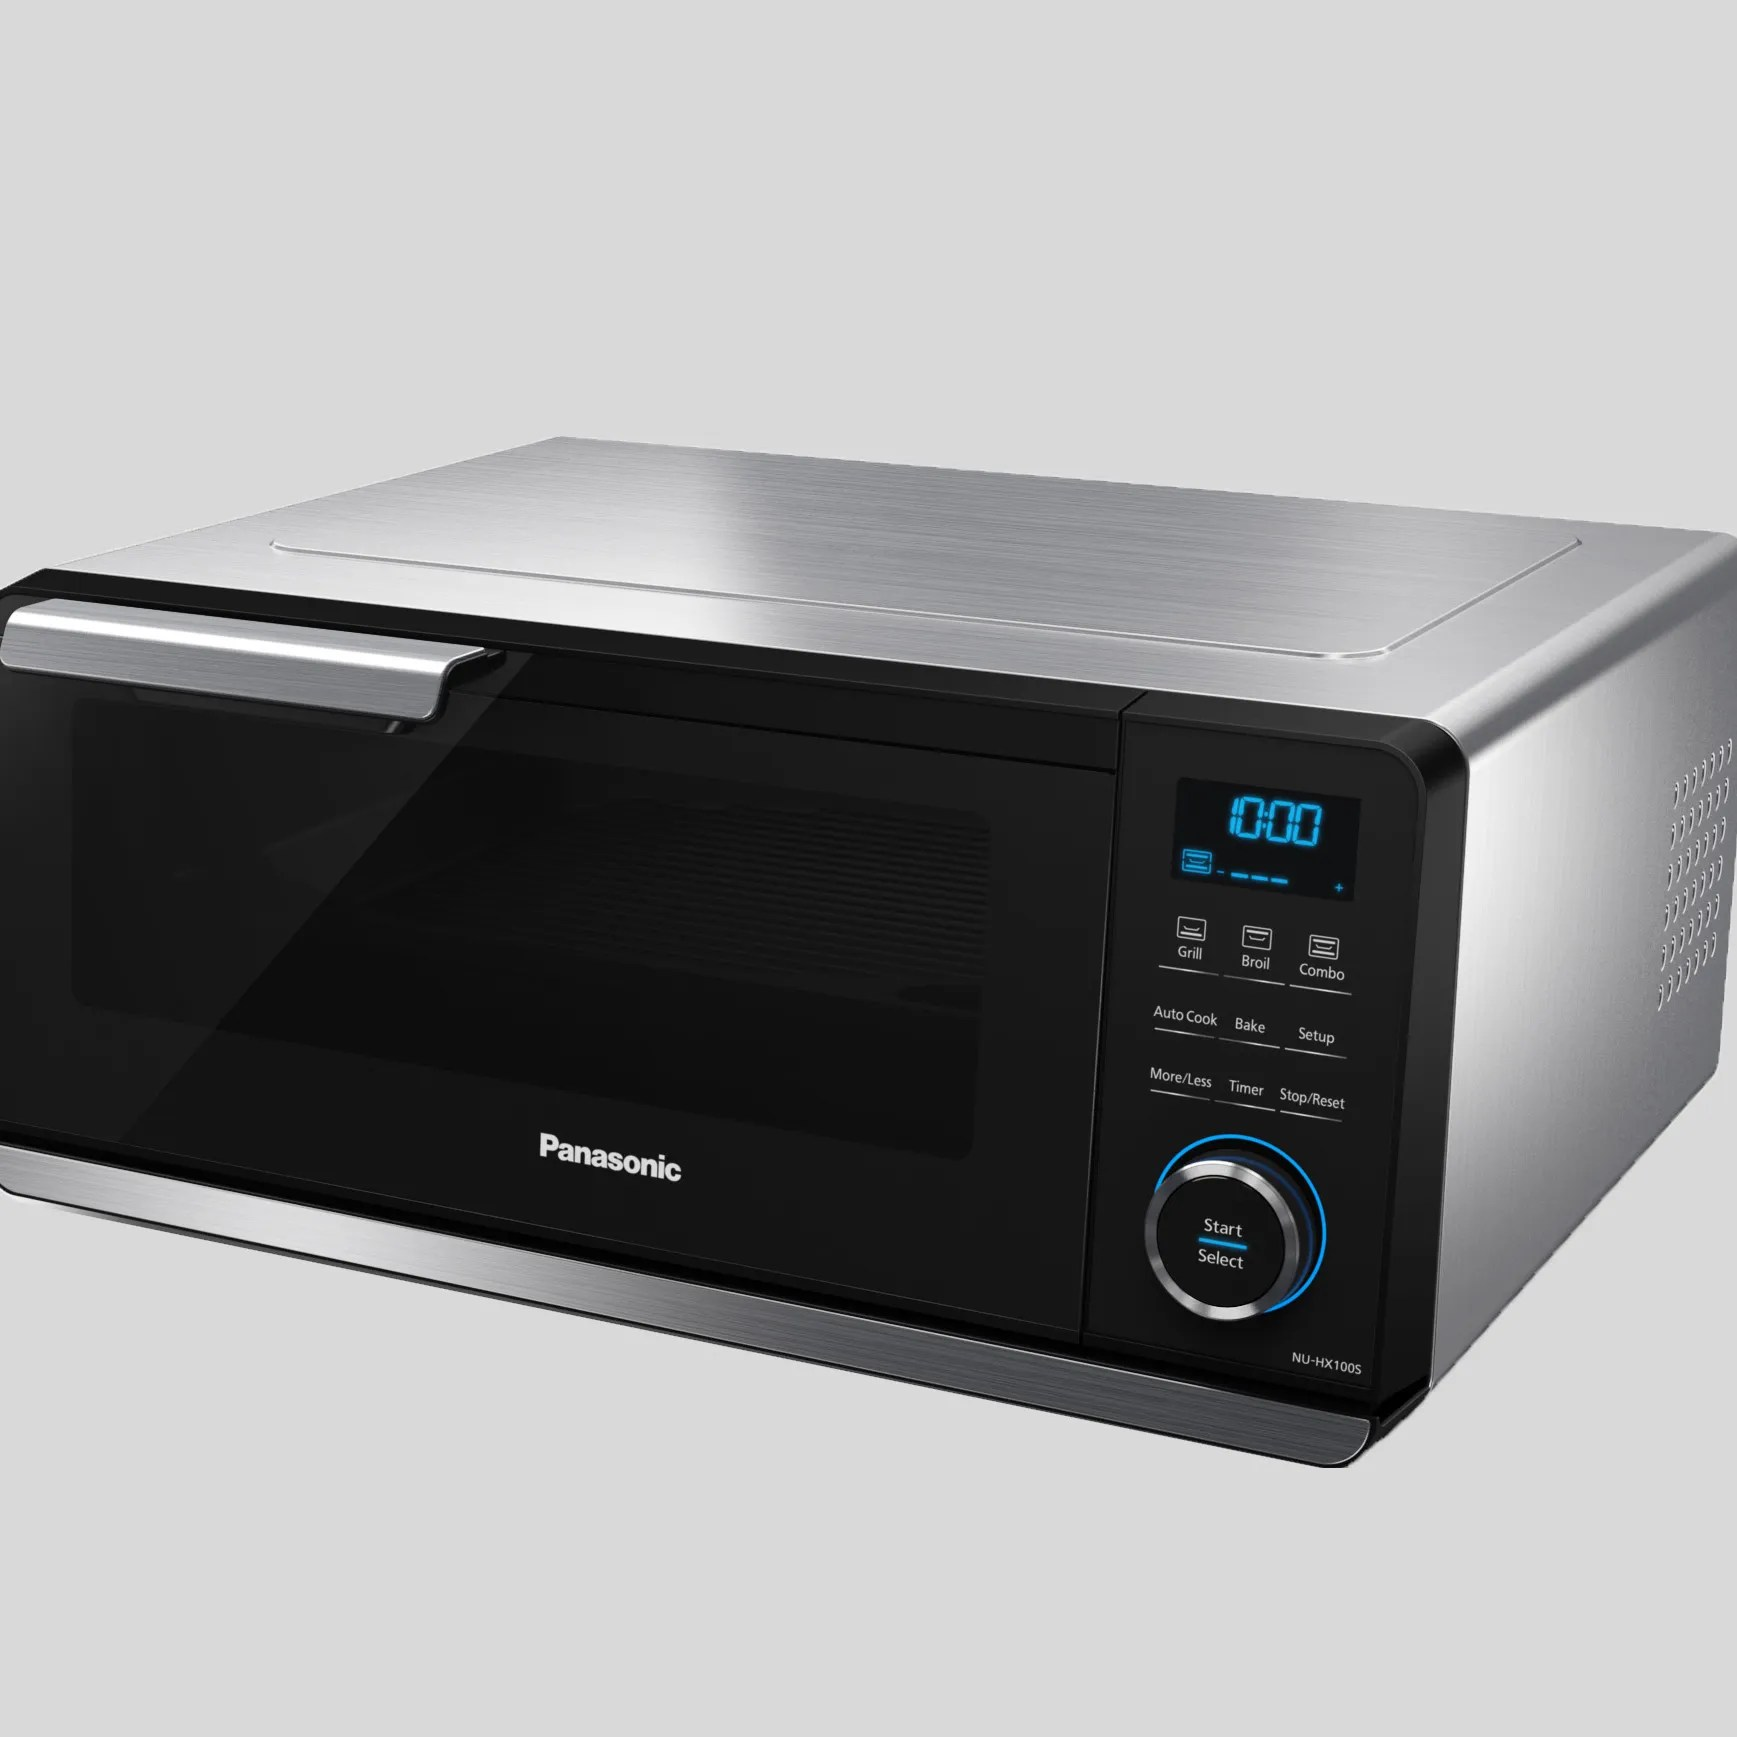 Review Panasonic Countertop Induction Oven Isn T Worth Getting Heated Up Over Wired